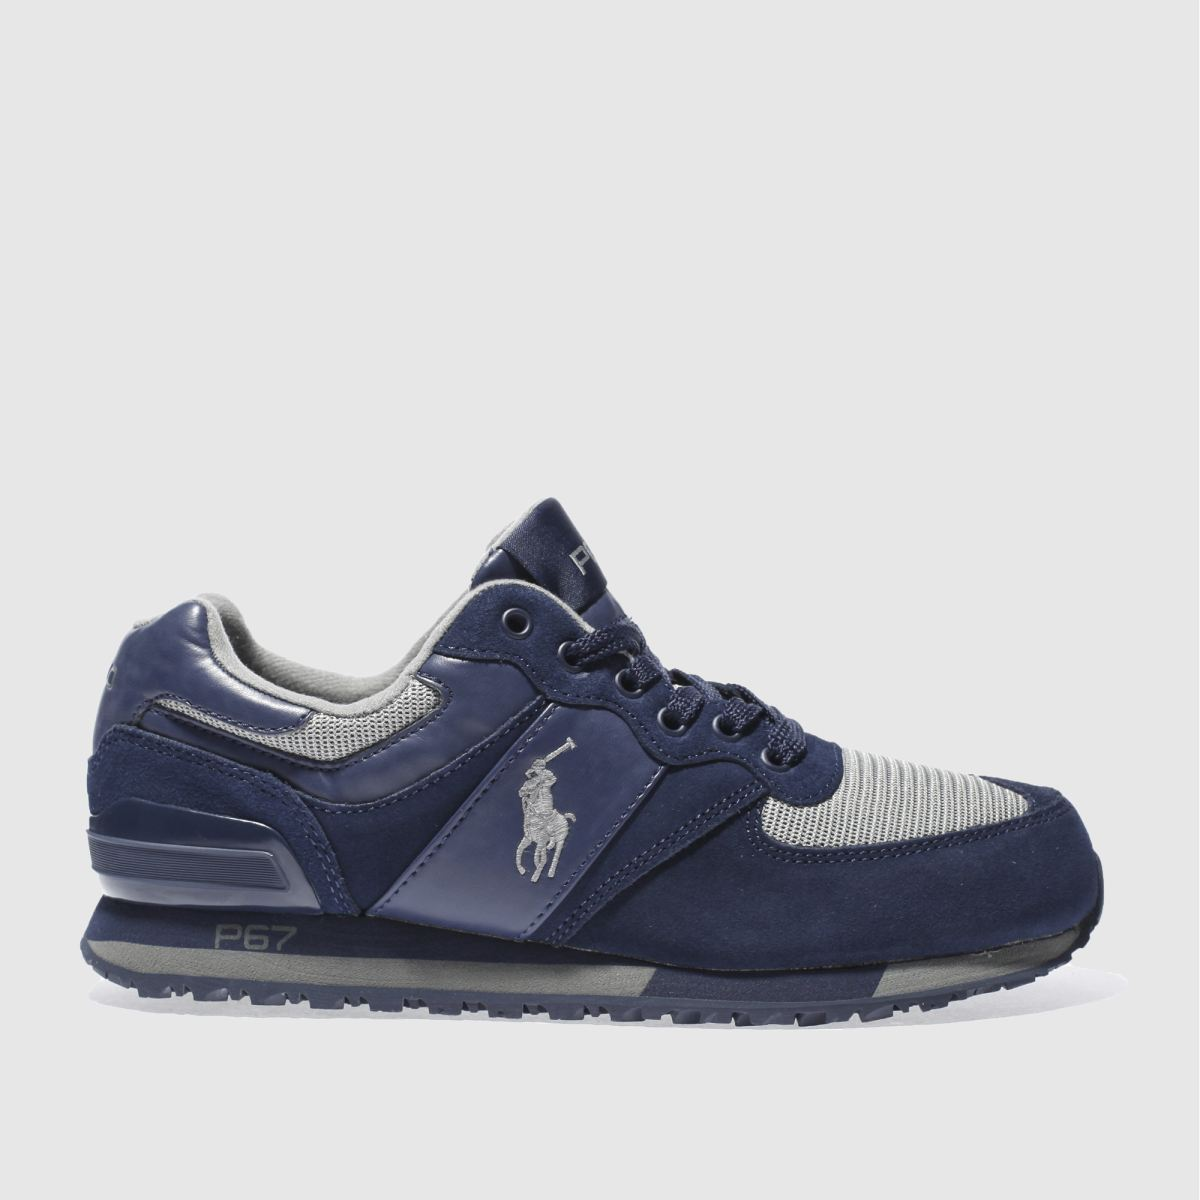 polo ralph lauren navy & grey slaton polo trainers